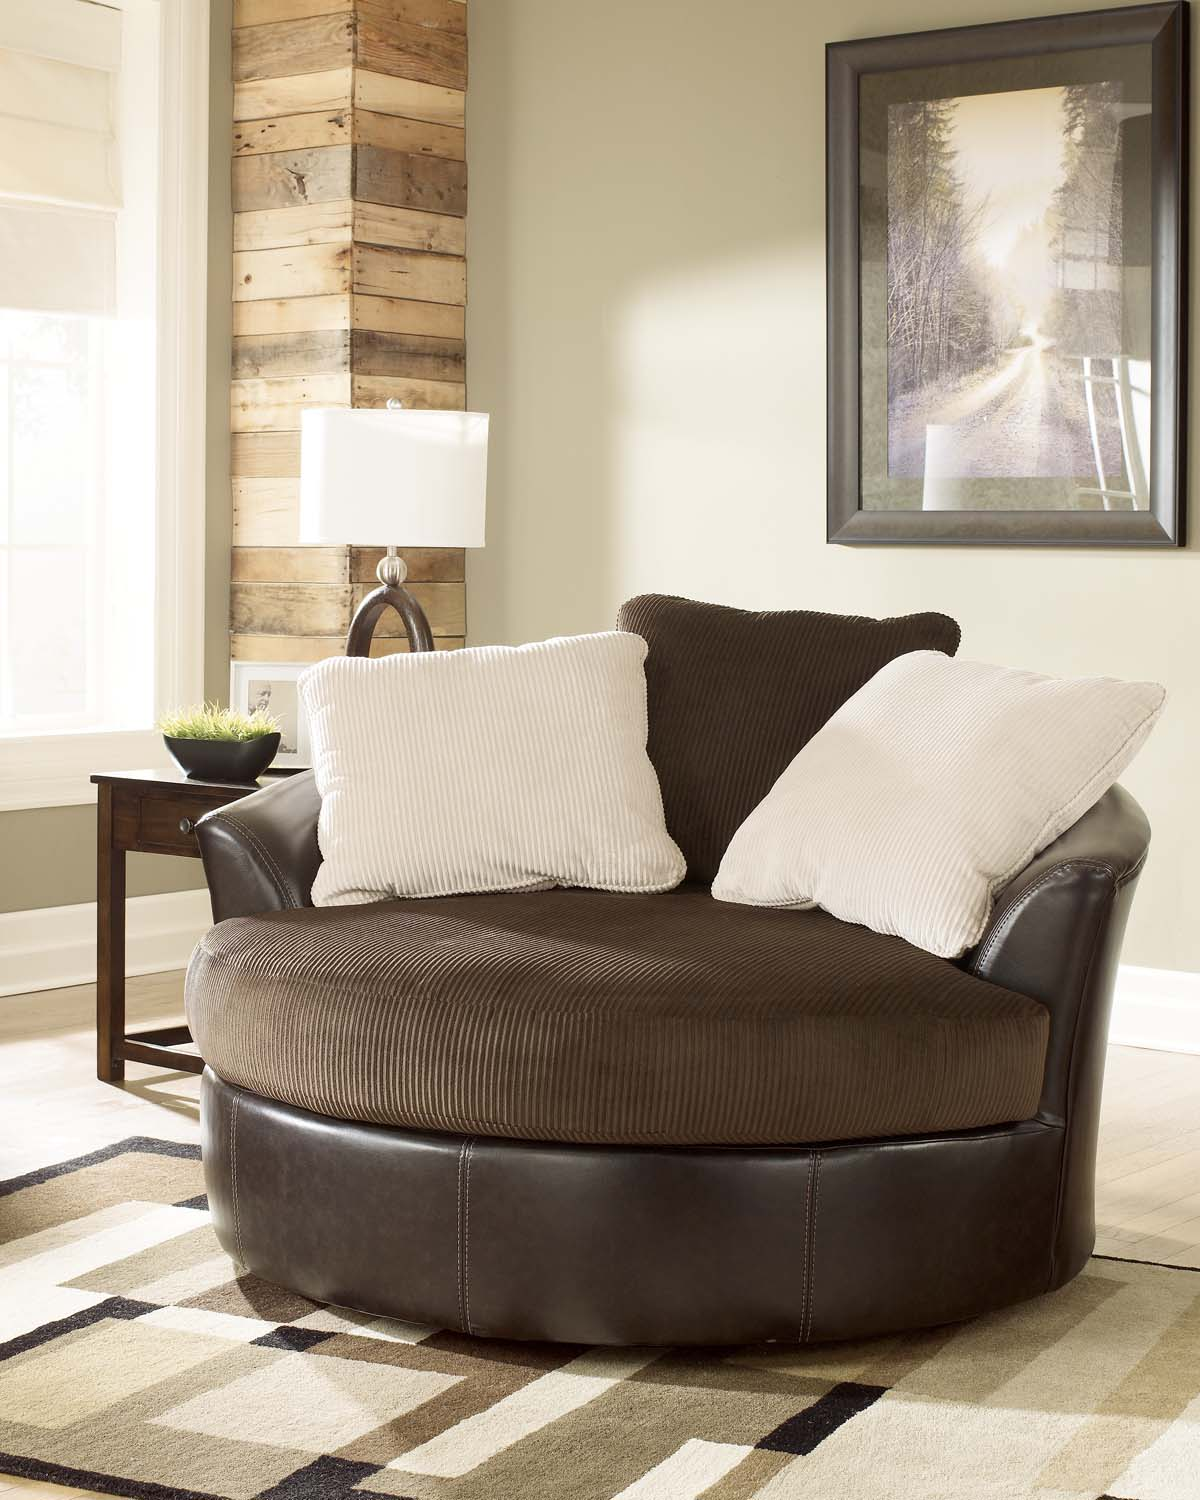 Attirant 5070021 In By Ashley Furniture In Tucson, AZ   Oversized Swivel Accent Chair